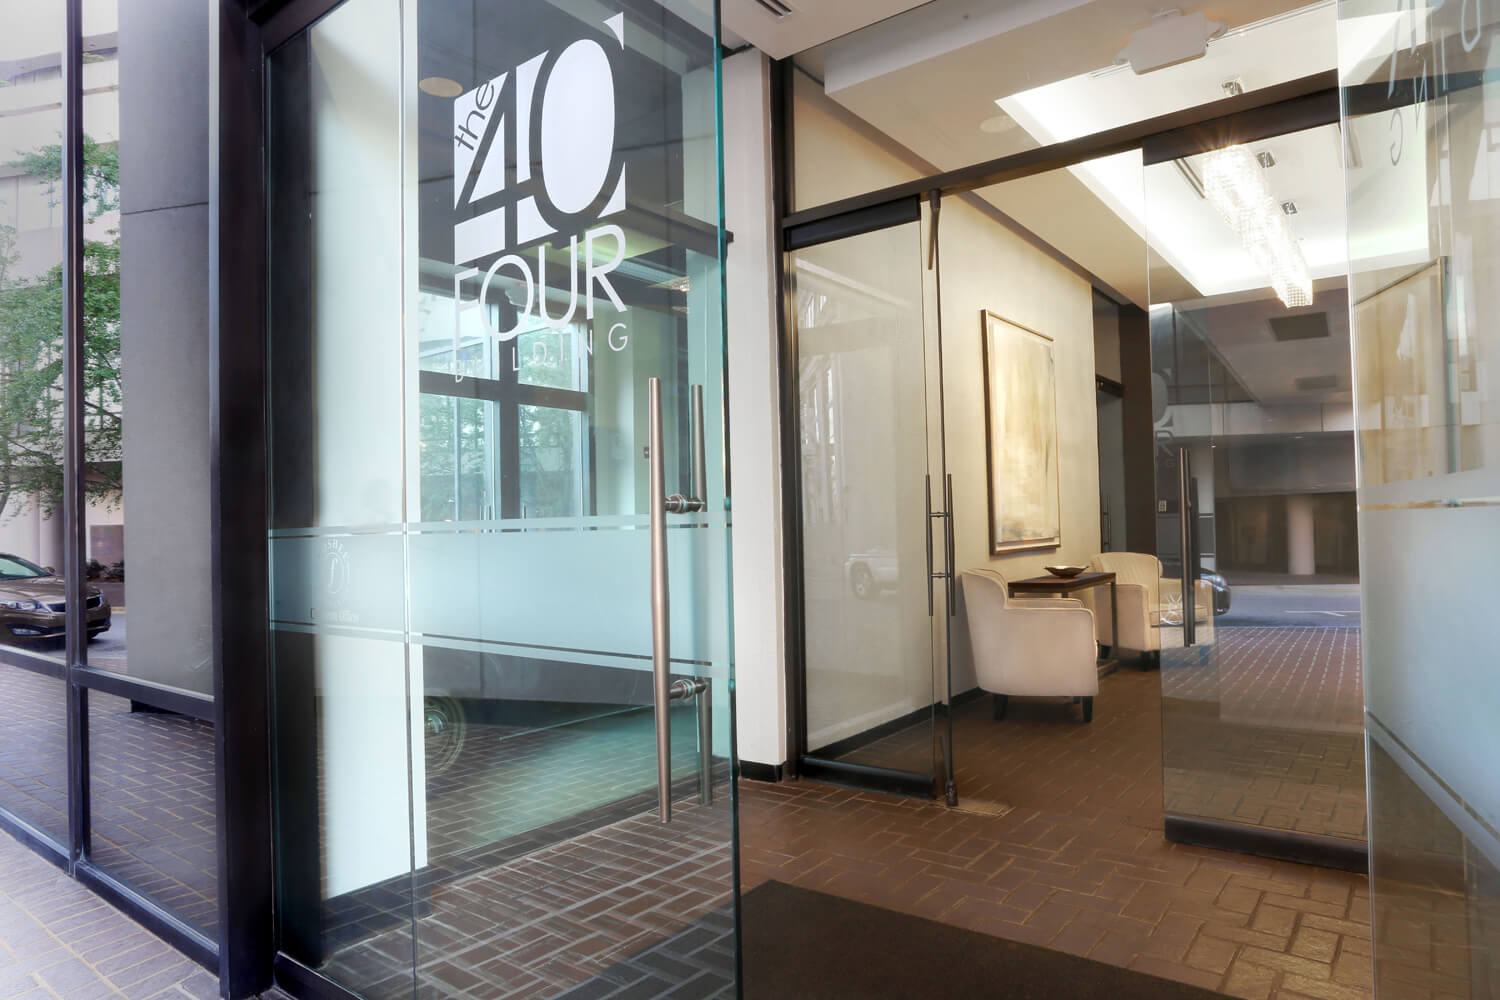 The 40 Four Building Designed by Foshee Architecture – Glass Doors at Front Entry